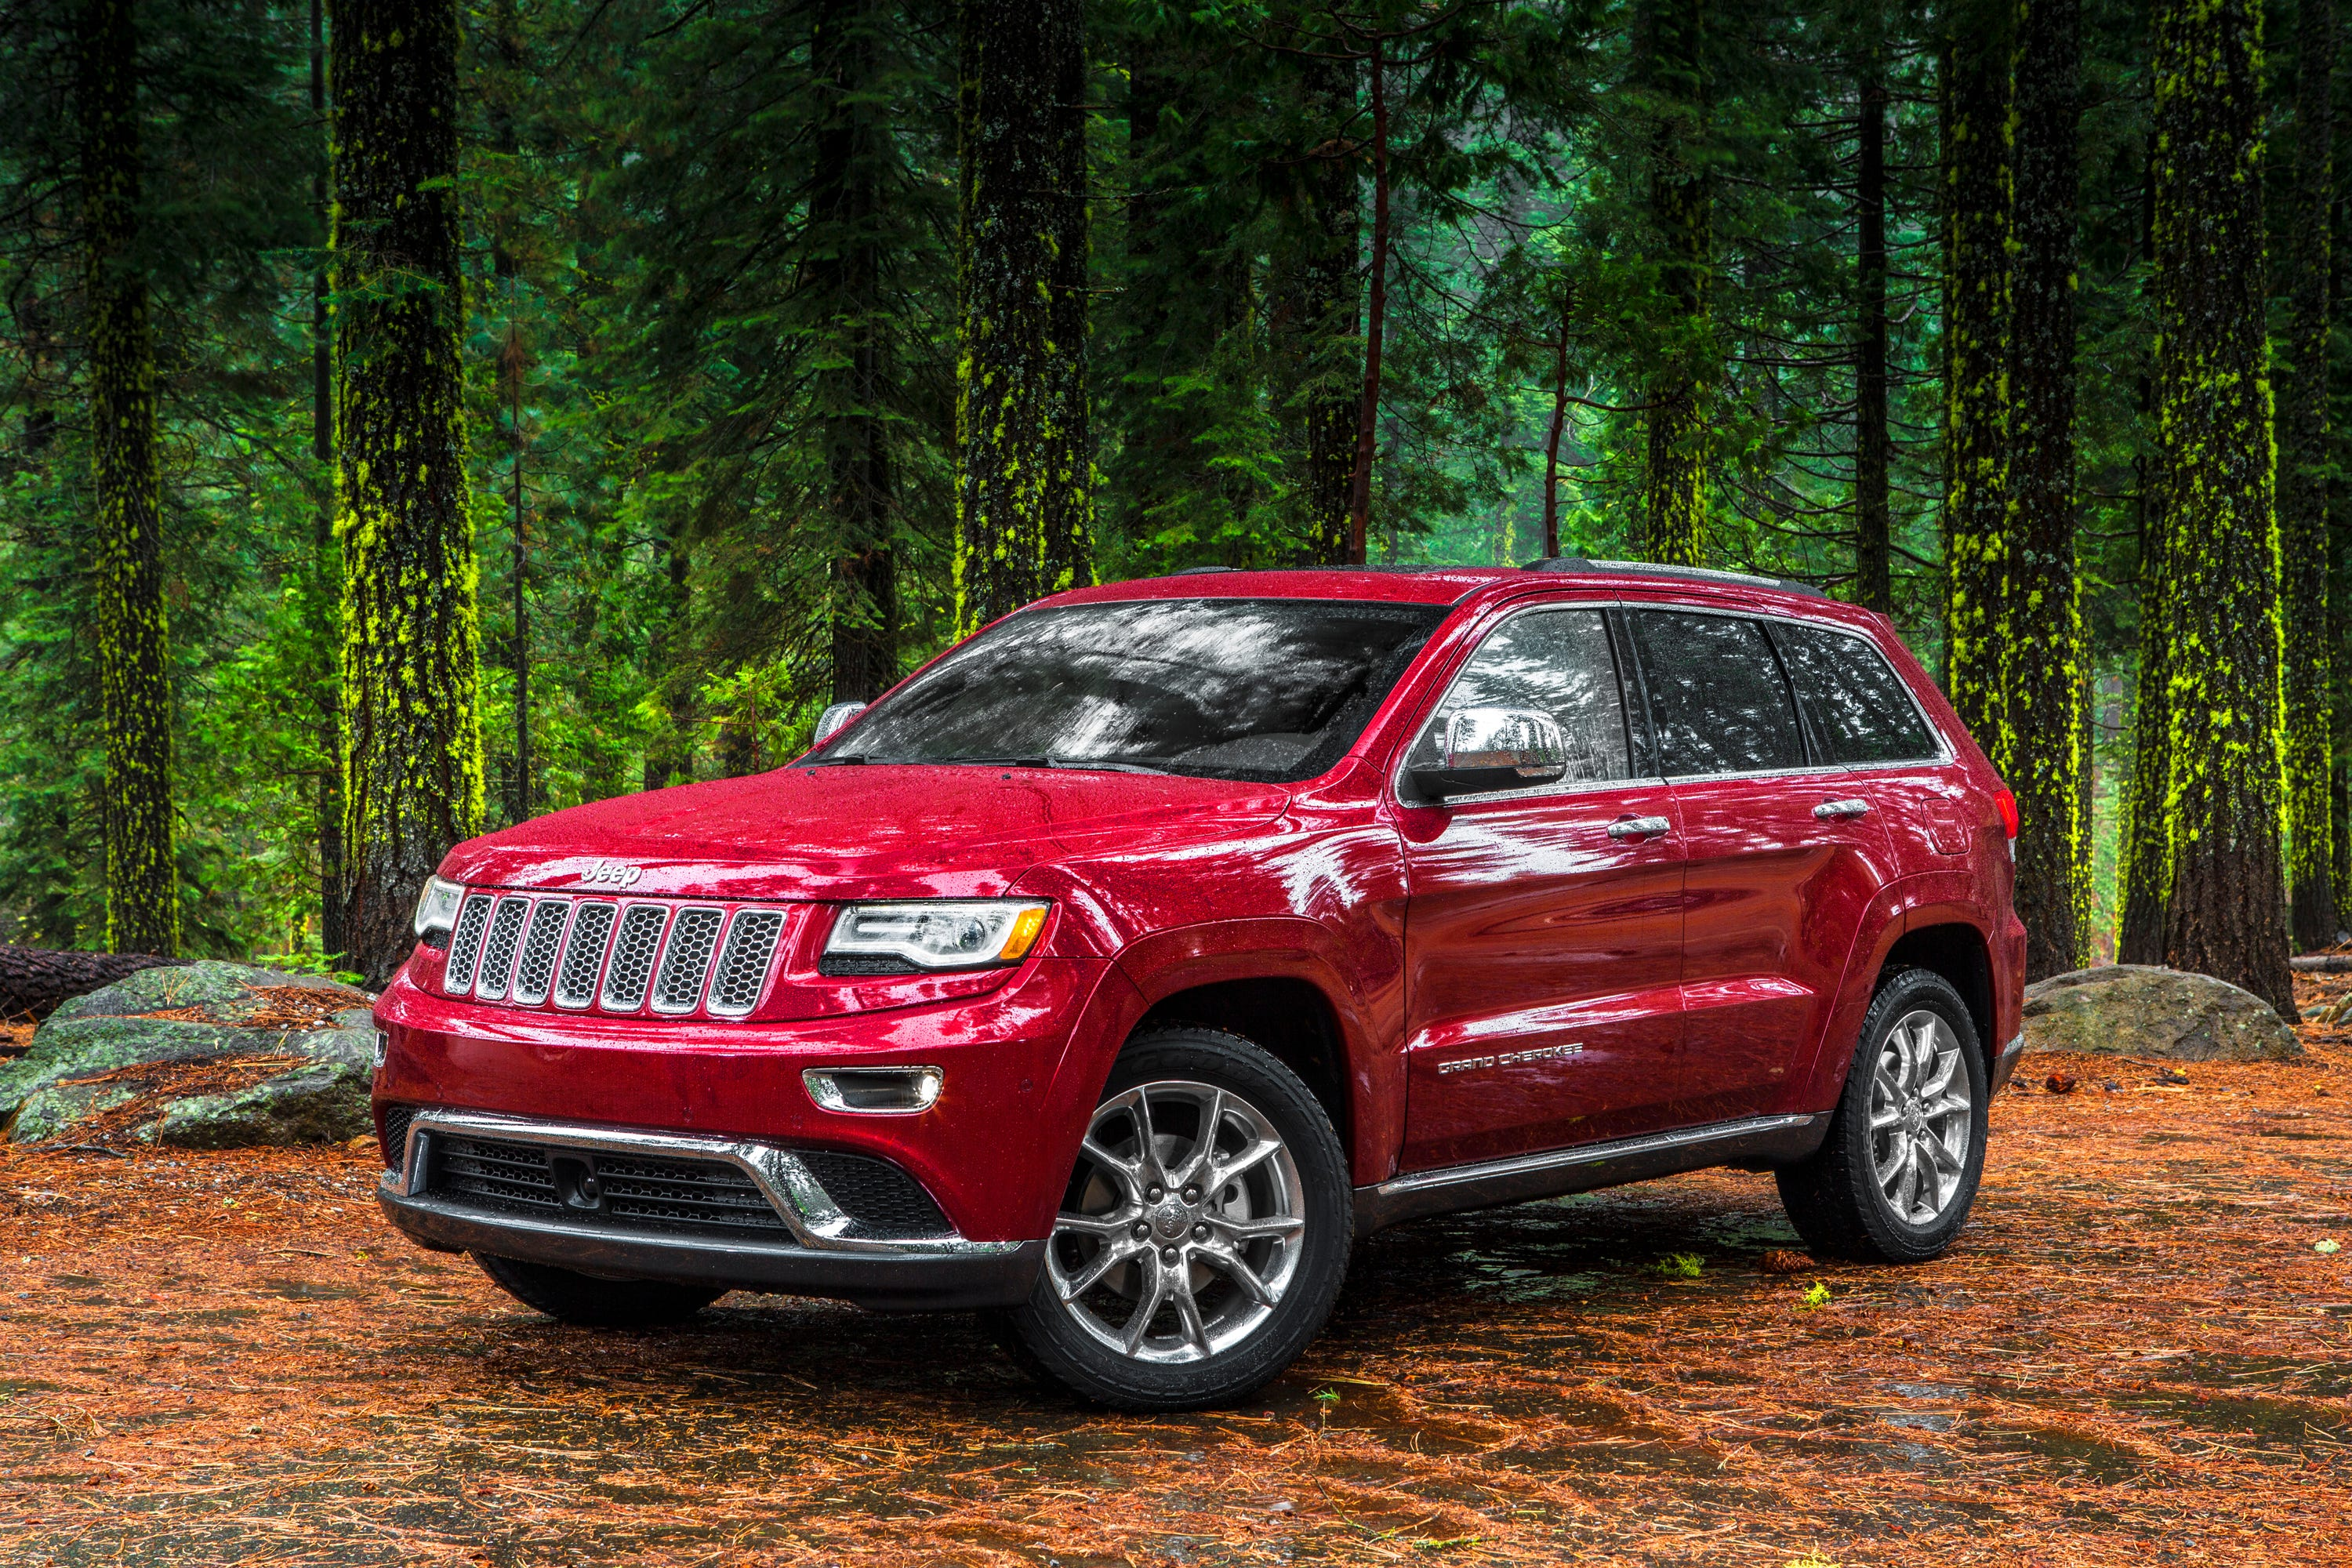 How much does a jeep grand cherokee weigh